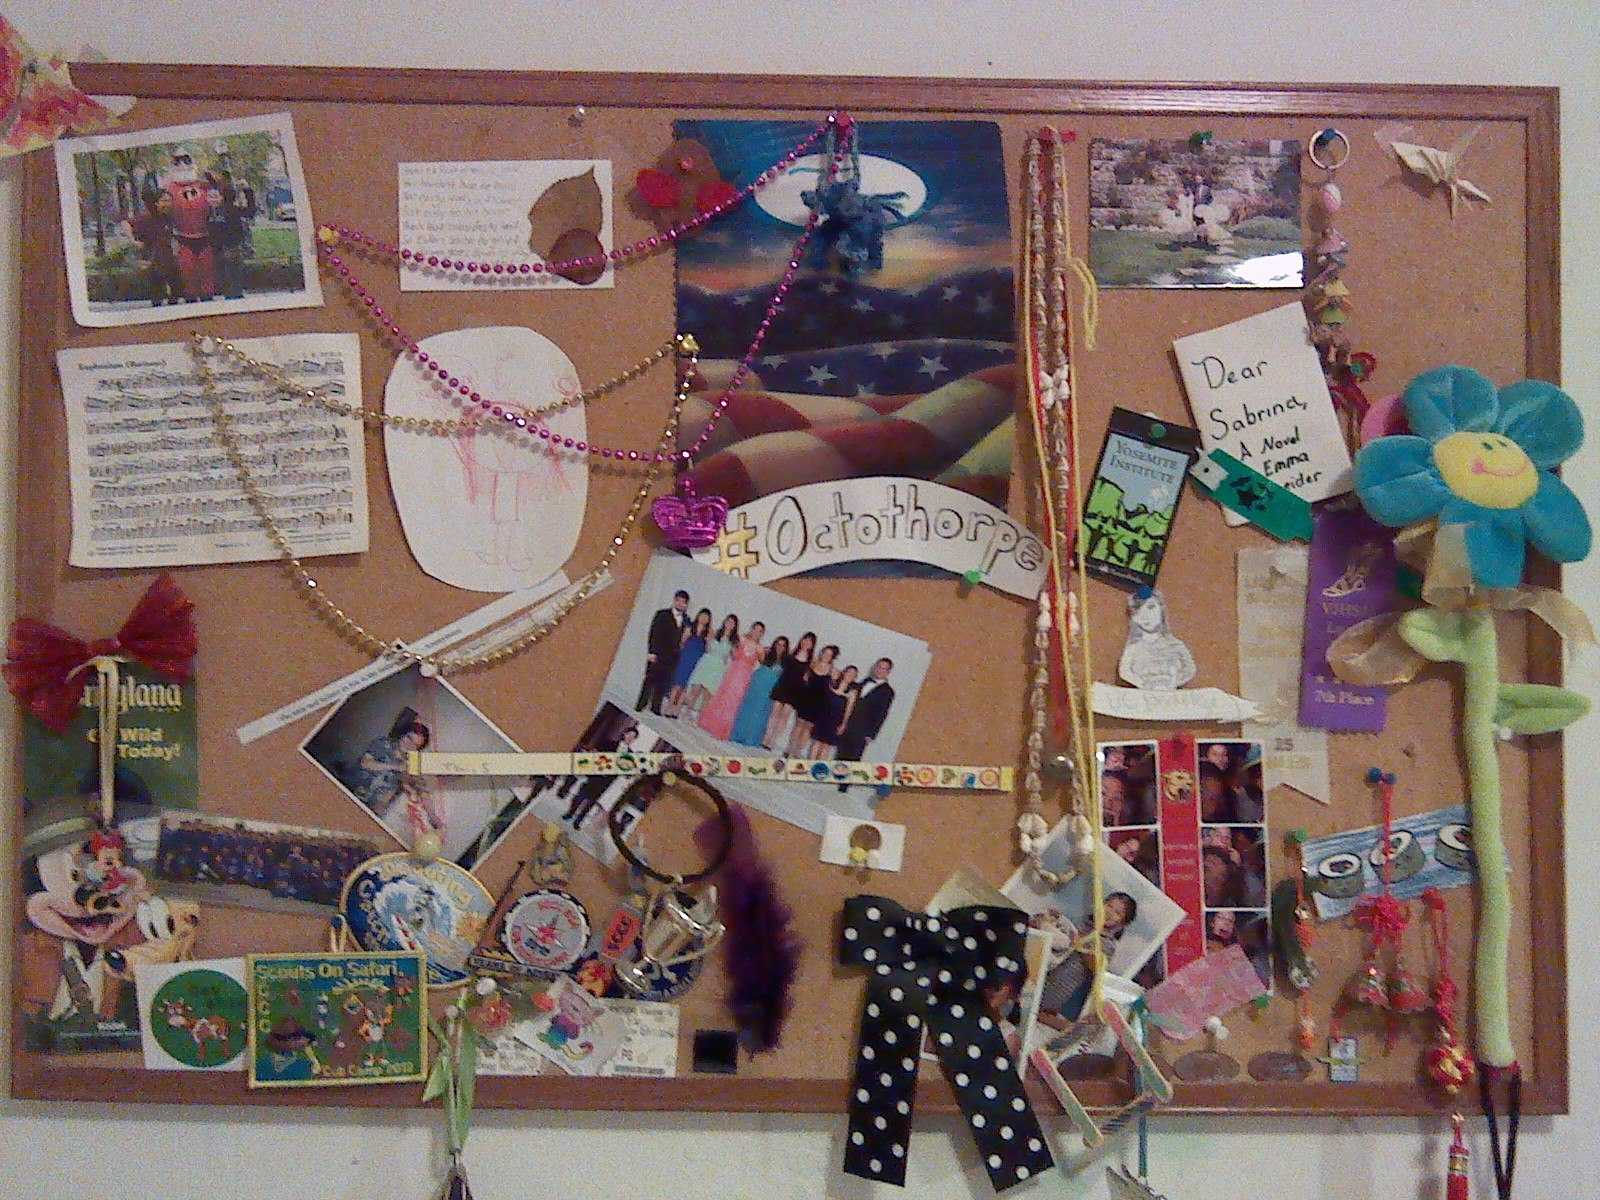 Senior Brina Tsui's bulletin board hangs in her room, displaying different mementos. Souvenirs from trips, gifts from her friends and photos are all displayed on the board. Photo by Brina Tsui.